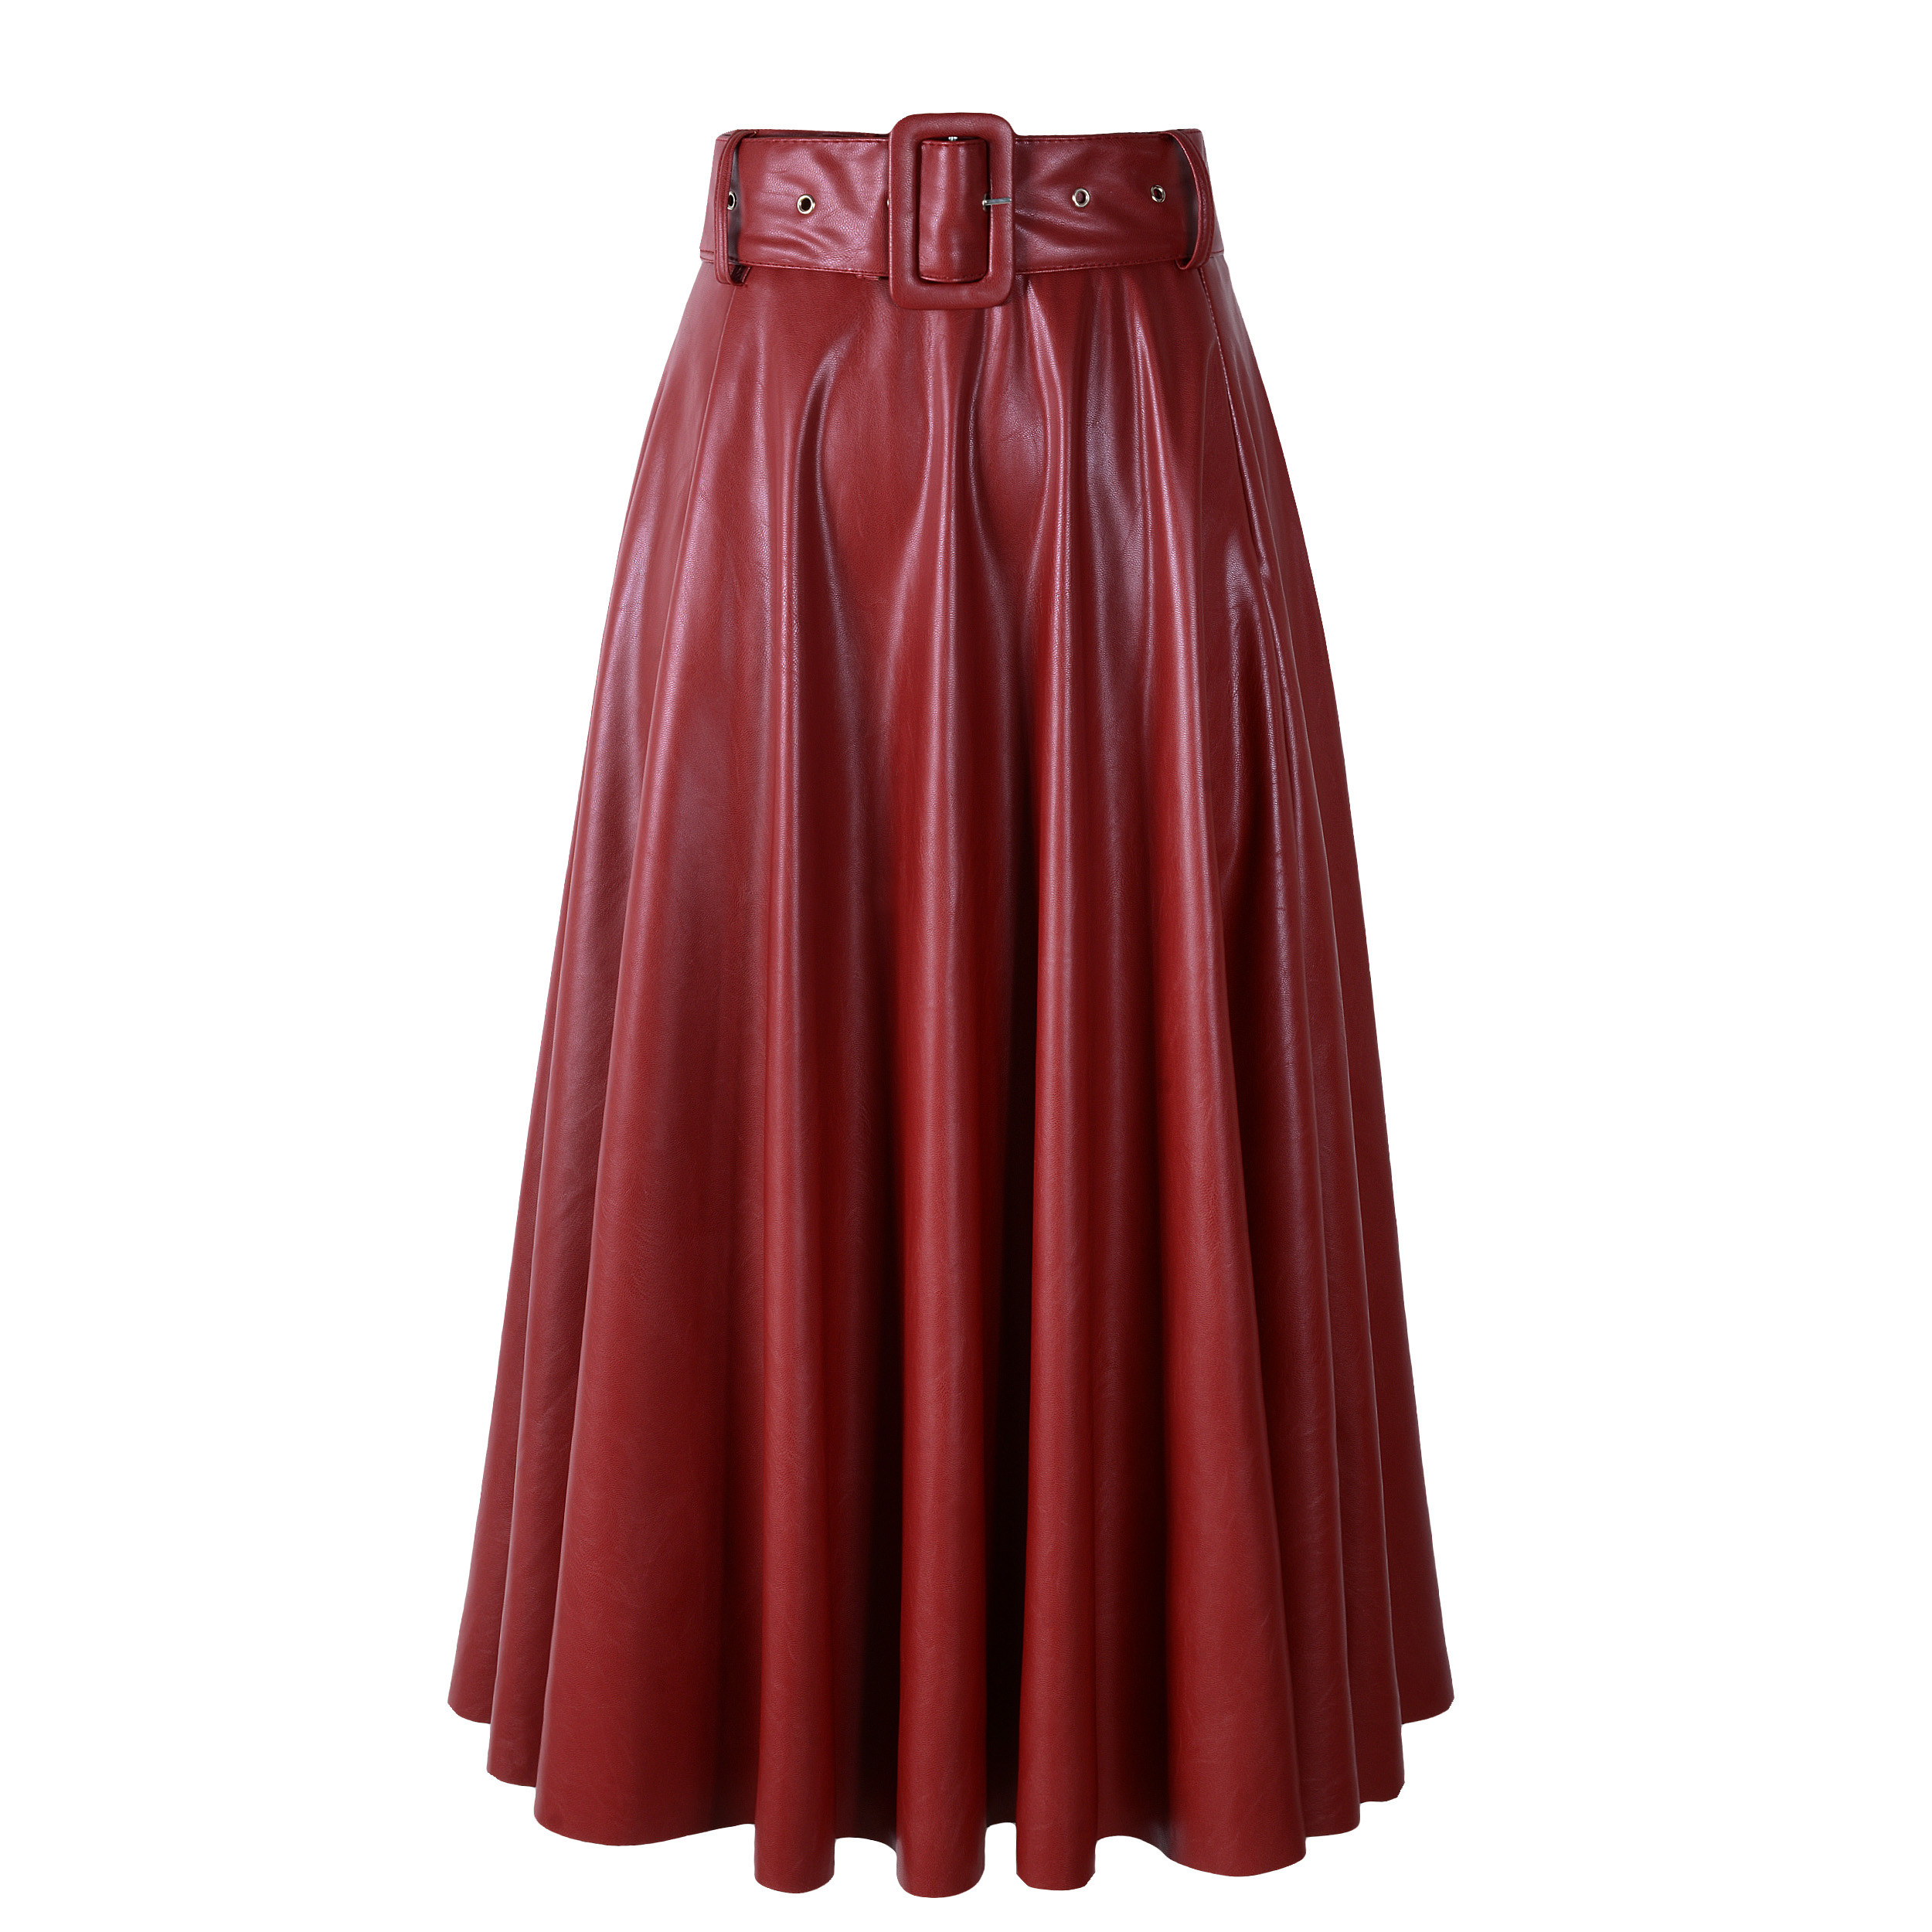 2020 New Women Autumn Winter PU Pleated Faux Leather Skirts Lady High Waist A-line Wine Red Maxi Long Black Skirt With Belt